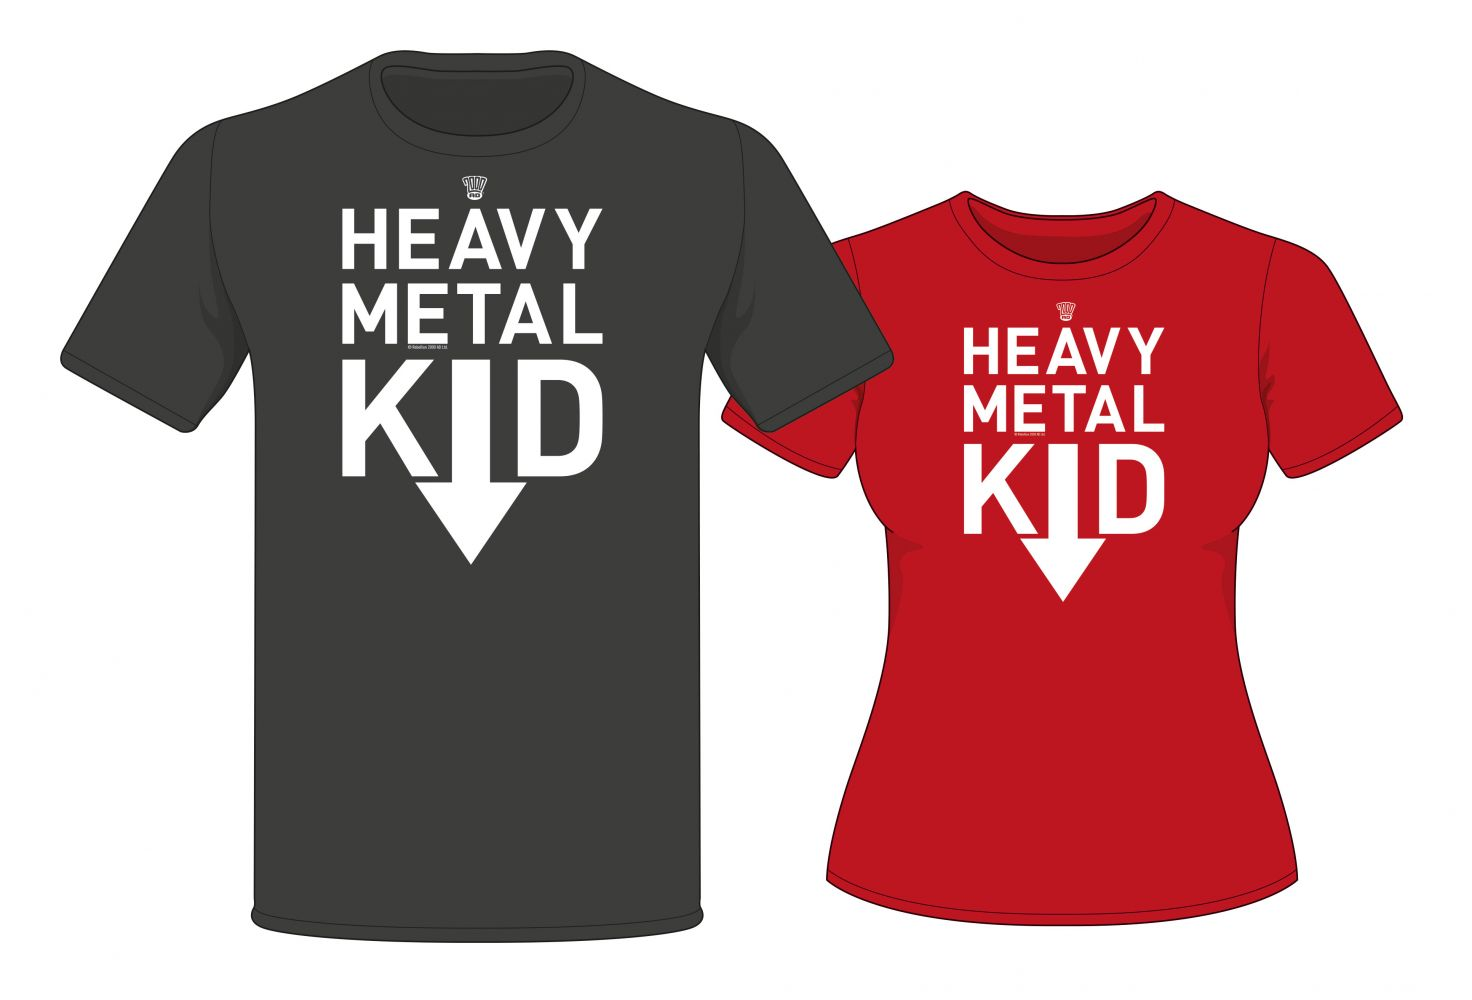 Heavy Metal Kid Logo T-shirt